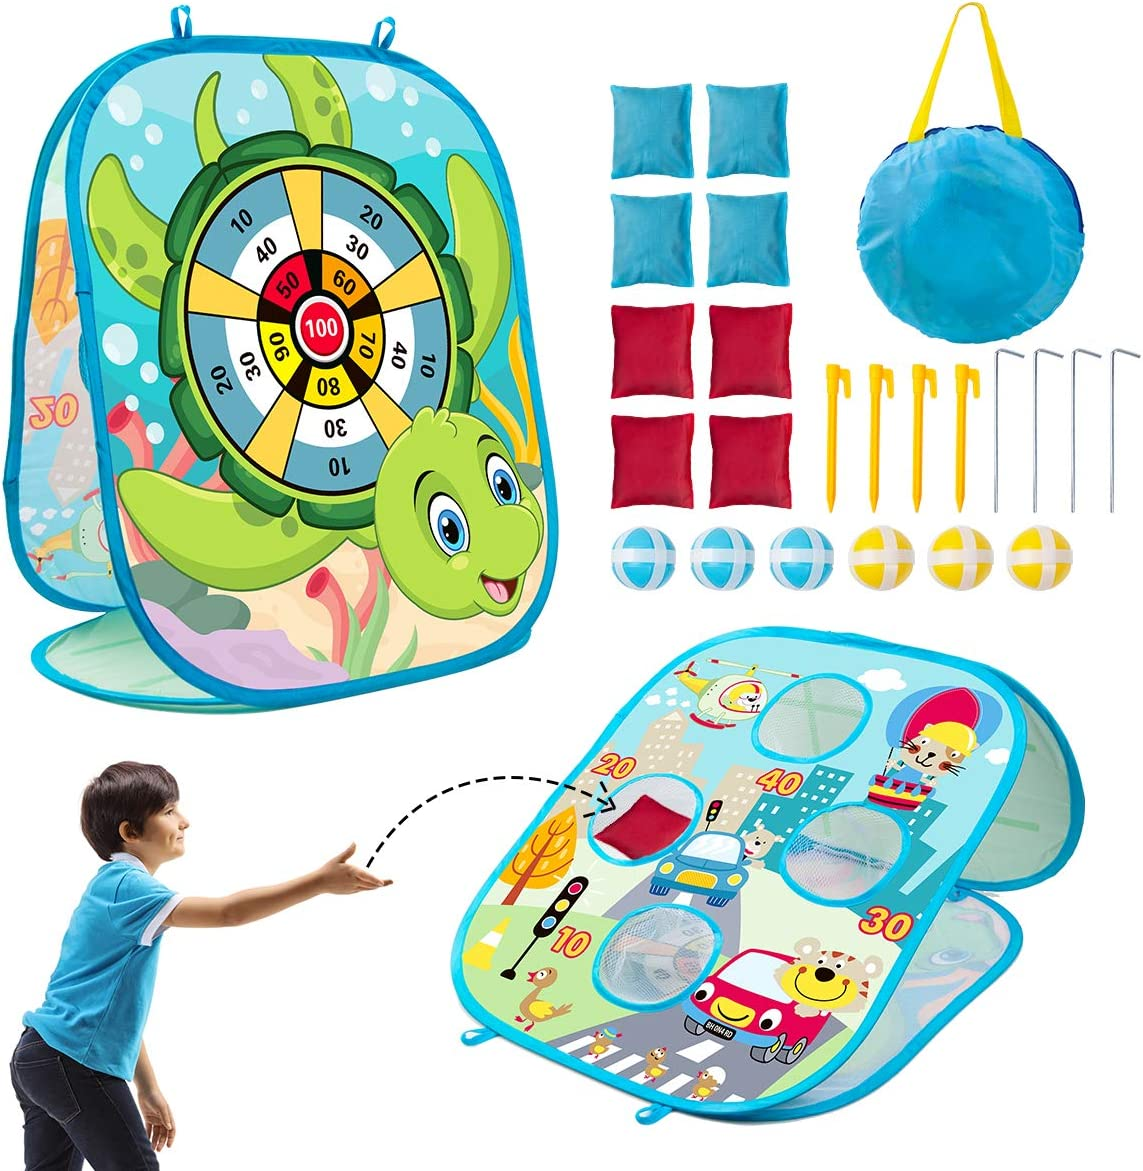 Online limited product 3 in 1 Bean Bag Toss Game Set Outside Gorgeous To for Toys Kids